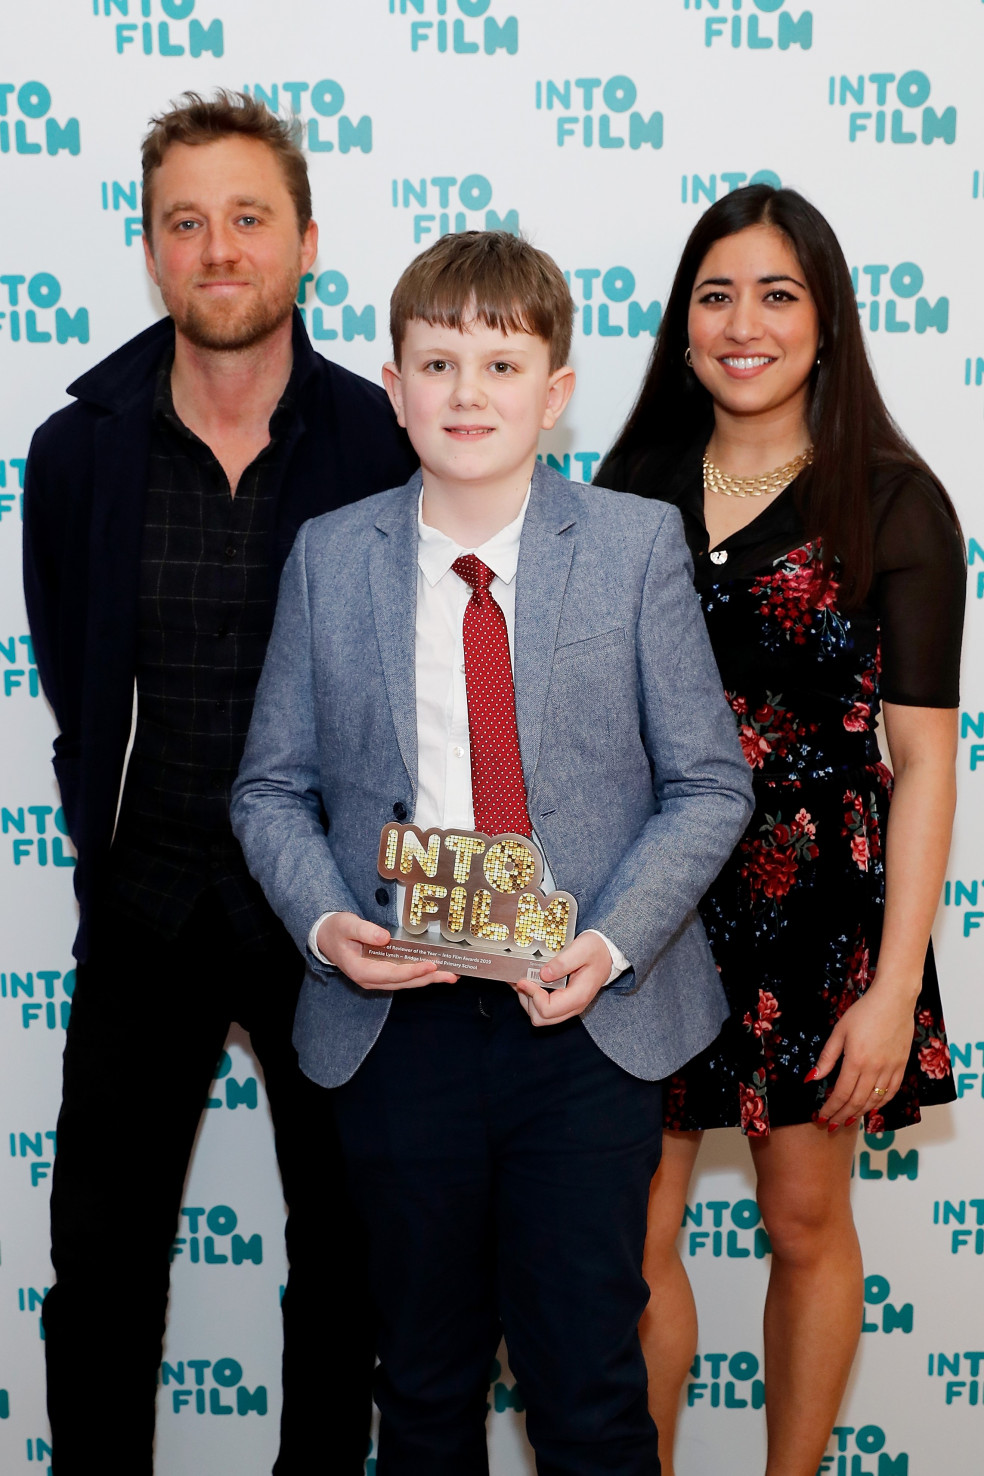 Frankie with director Michael Pearce and critic Rhianna Dhillon